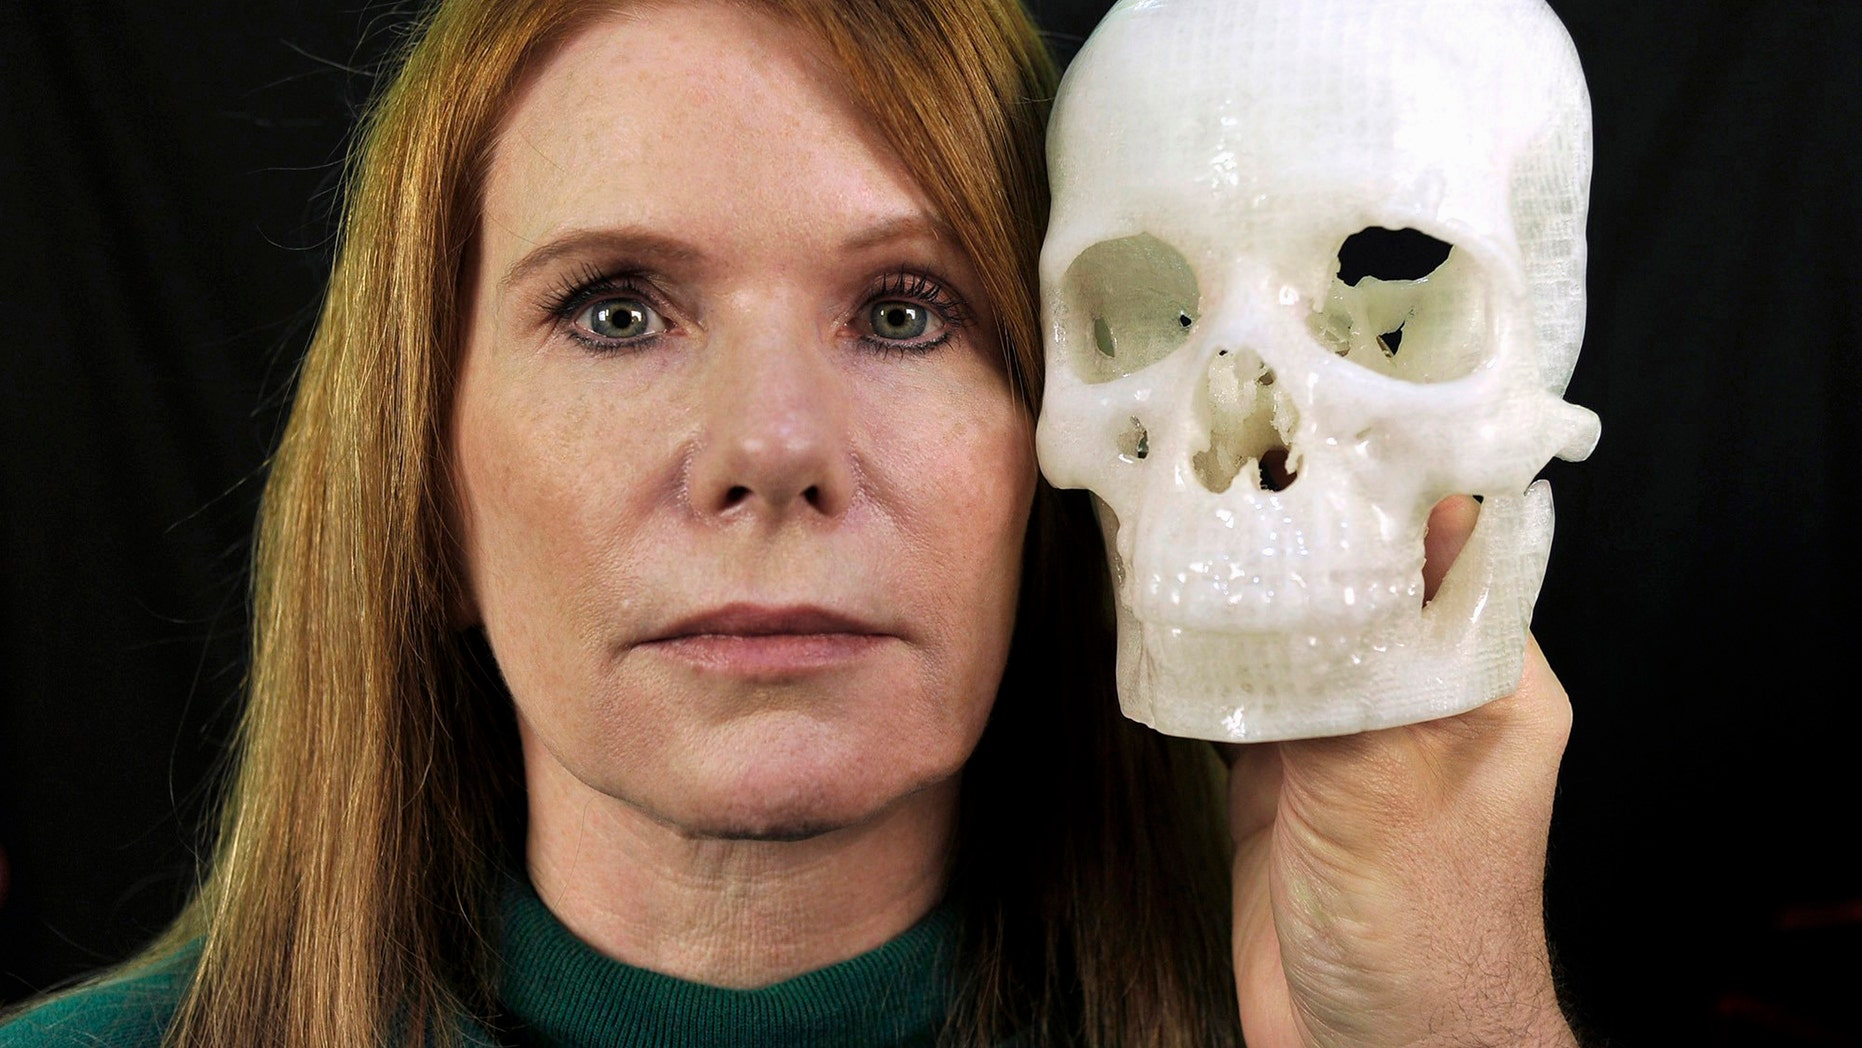 In this photo taken Jan. 13, 2015, Pamela Shavaun Scott holds a 3D printer model of her skull after her brain tumor was removed from behind her eye, in Morro Bay, Calif. (AP Photo/Phil Klein)